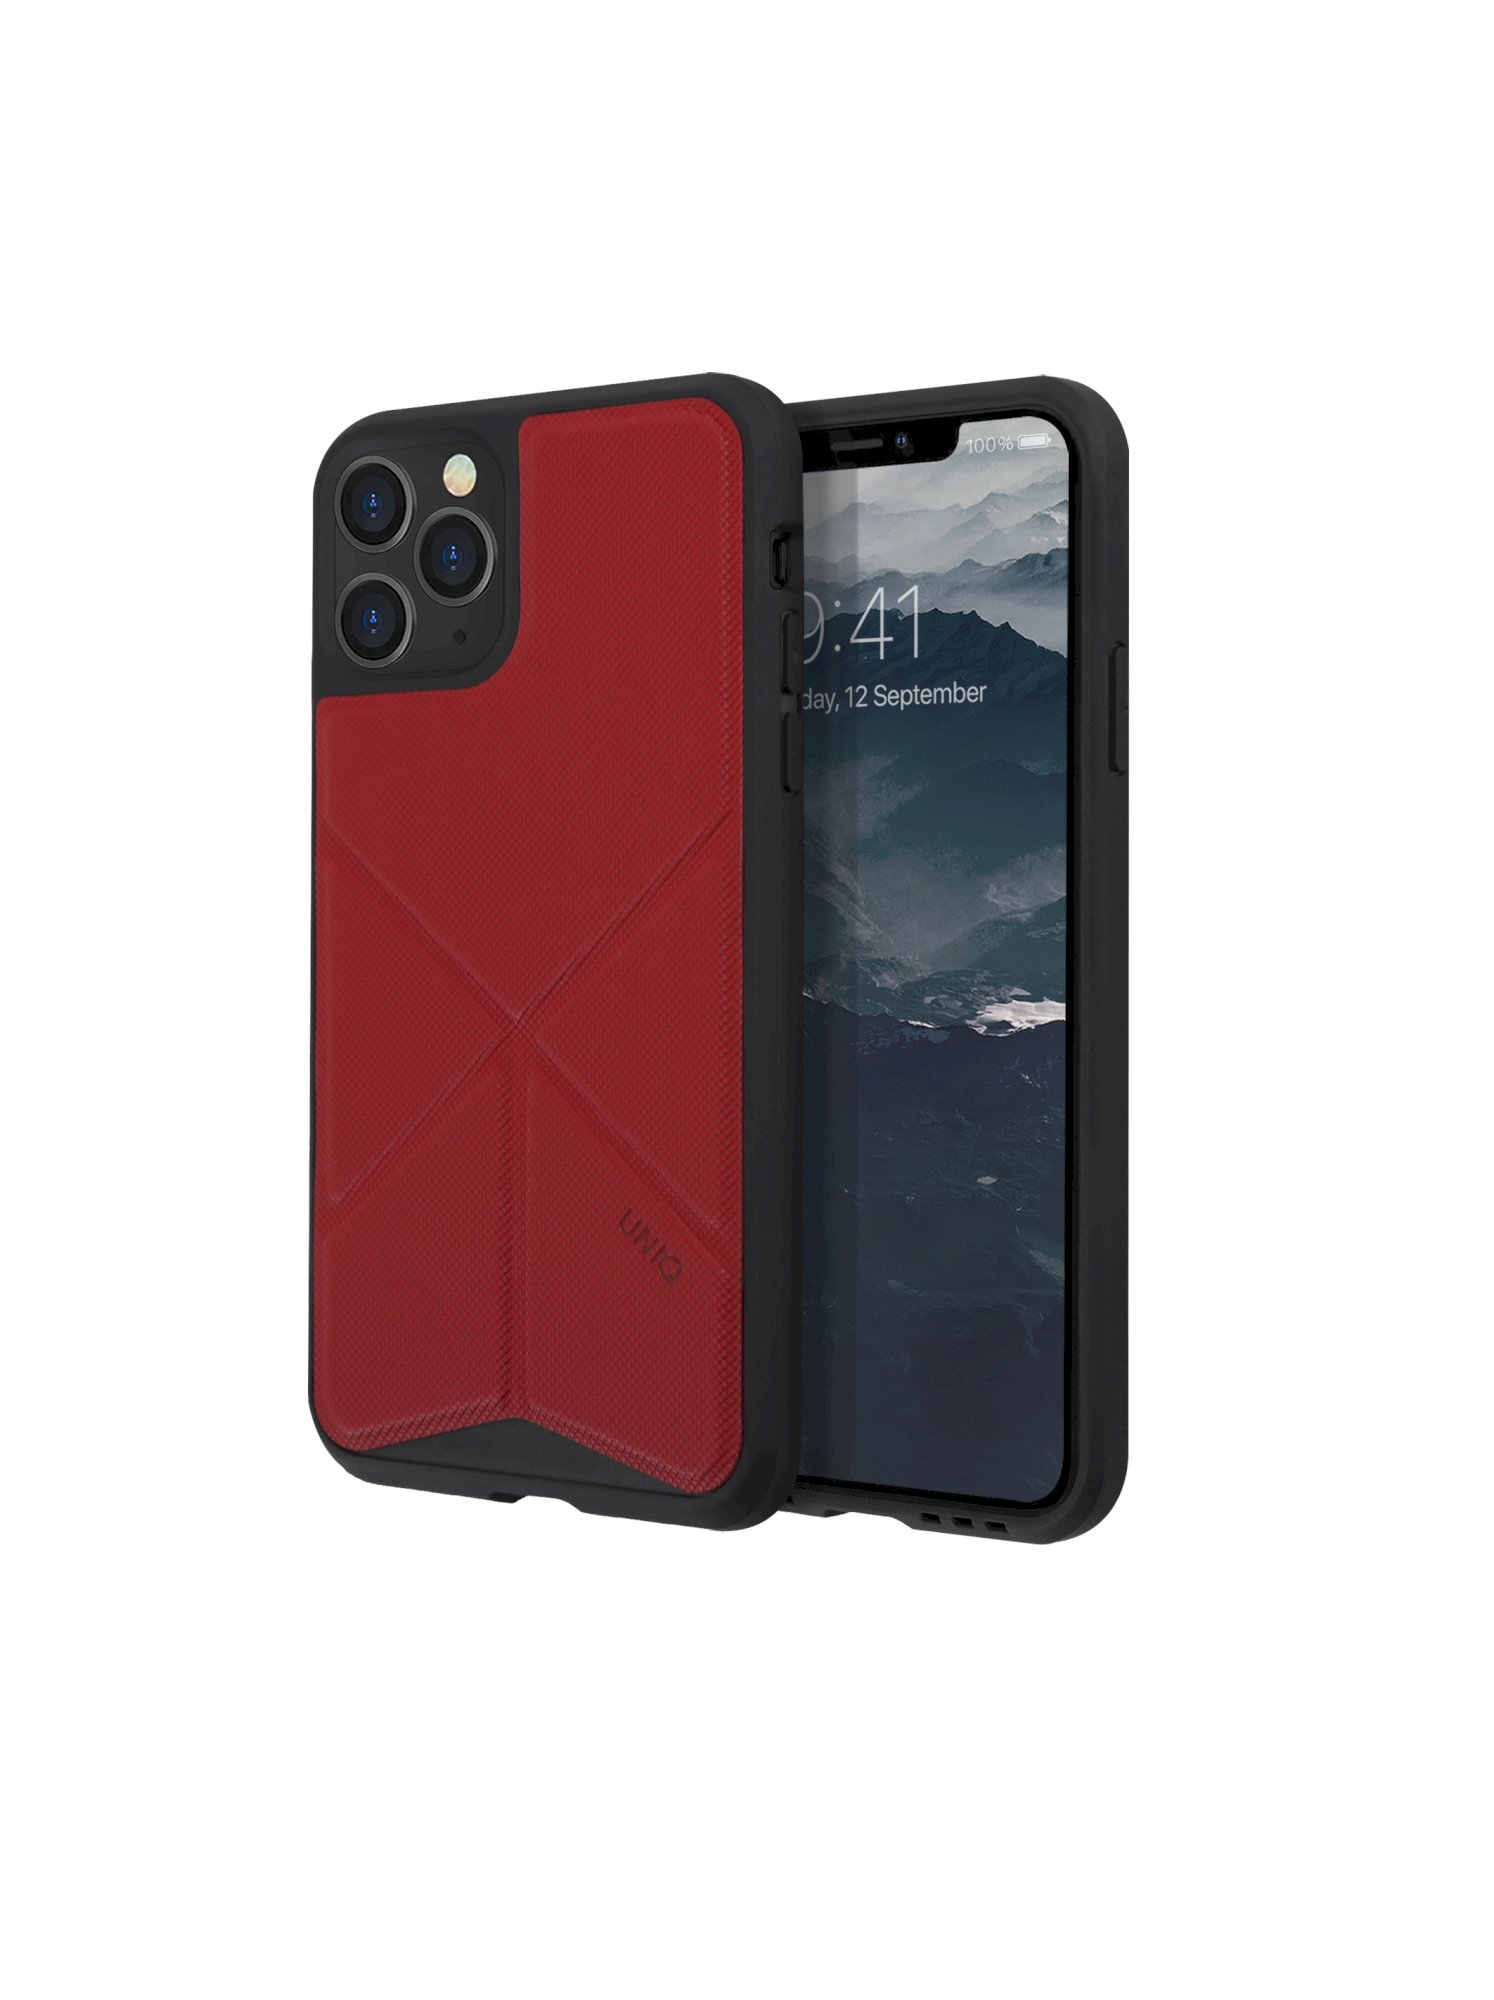 iPhone 11 Pro, case transforma, stand up fury racer, red